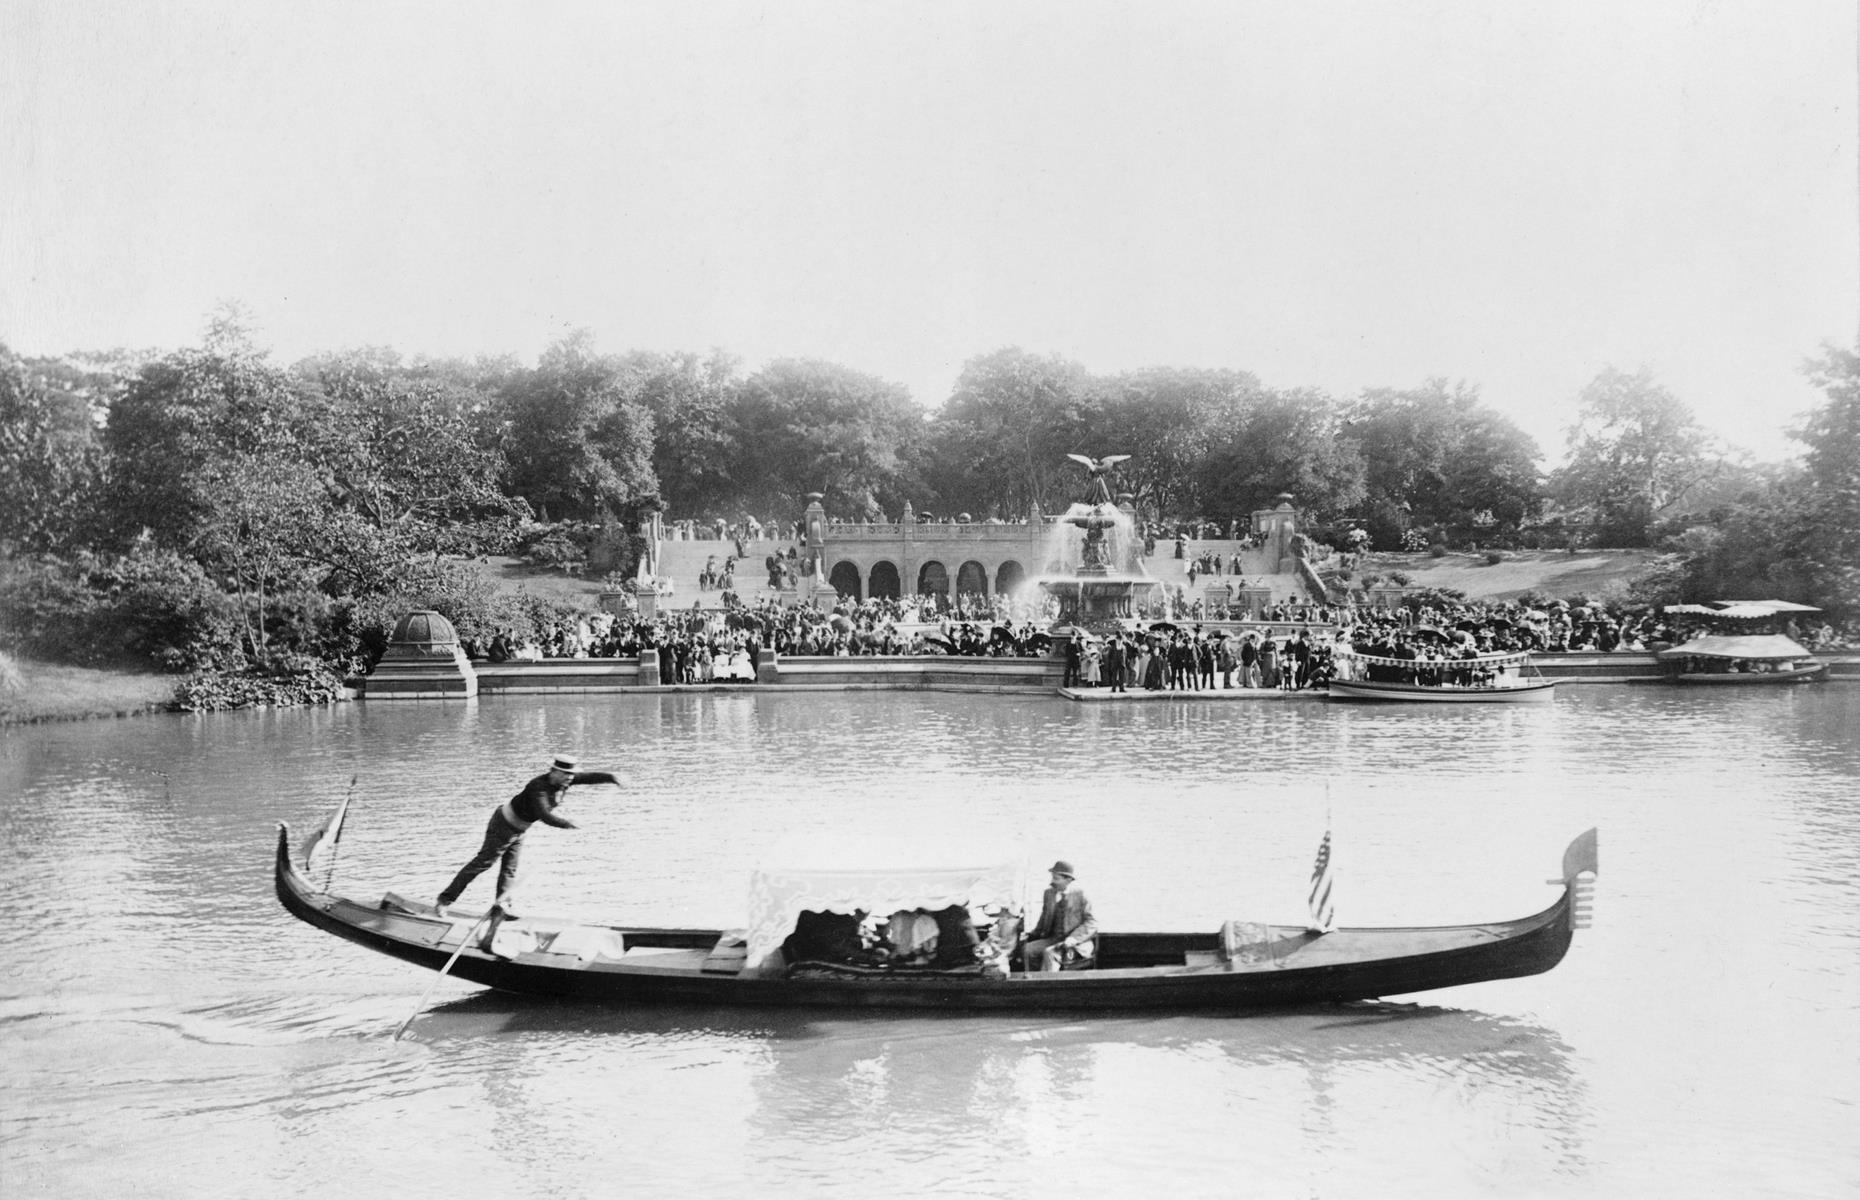 Slide 10 of 51: When Central Park officially opened in 1876 it became instantly popular with New Yorkers, with activities including gondolier trips on the lake (pictured here in 1894), carriage rides and model yacht racing favored by early visitors. The 840-acre park is one of the world's top attractions today and received a whopping 42 million visitors last year.